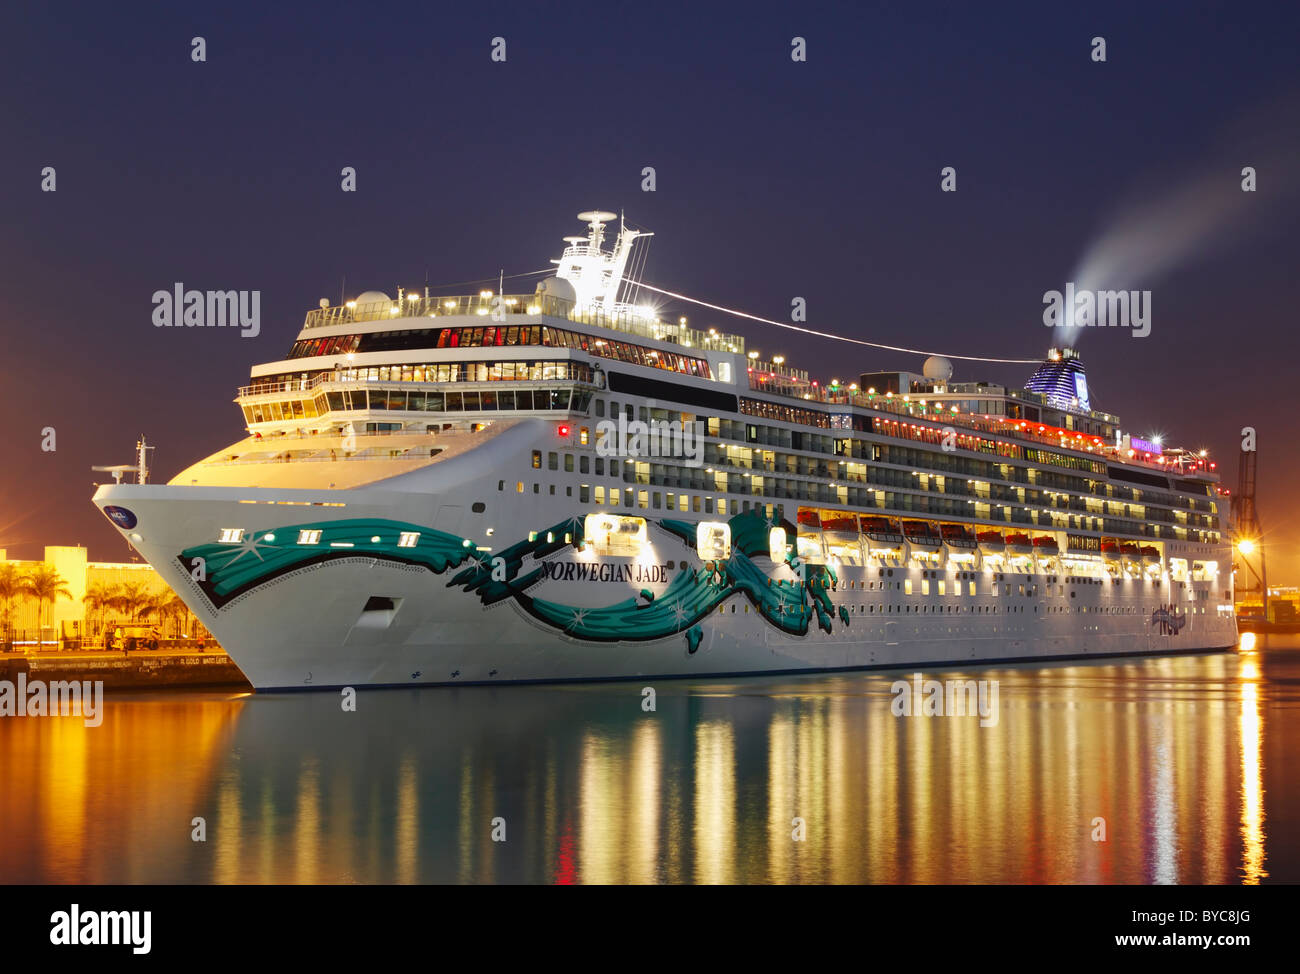 Cruise ship Norwegian Jade in Las Palmas on Gran Canaria, Canary Islands, Spain - Stock Image